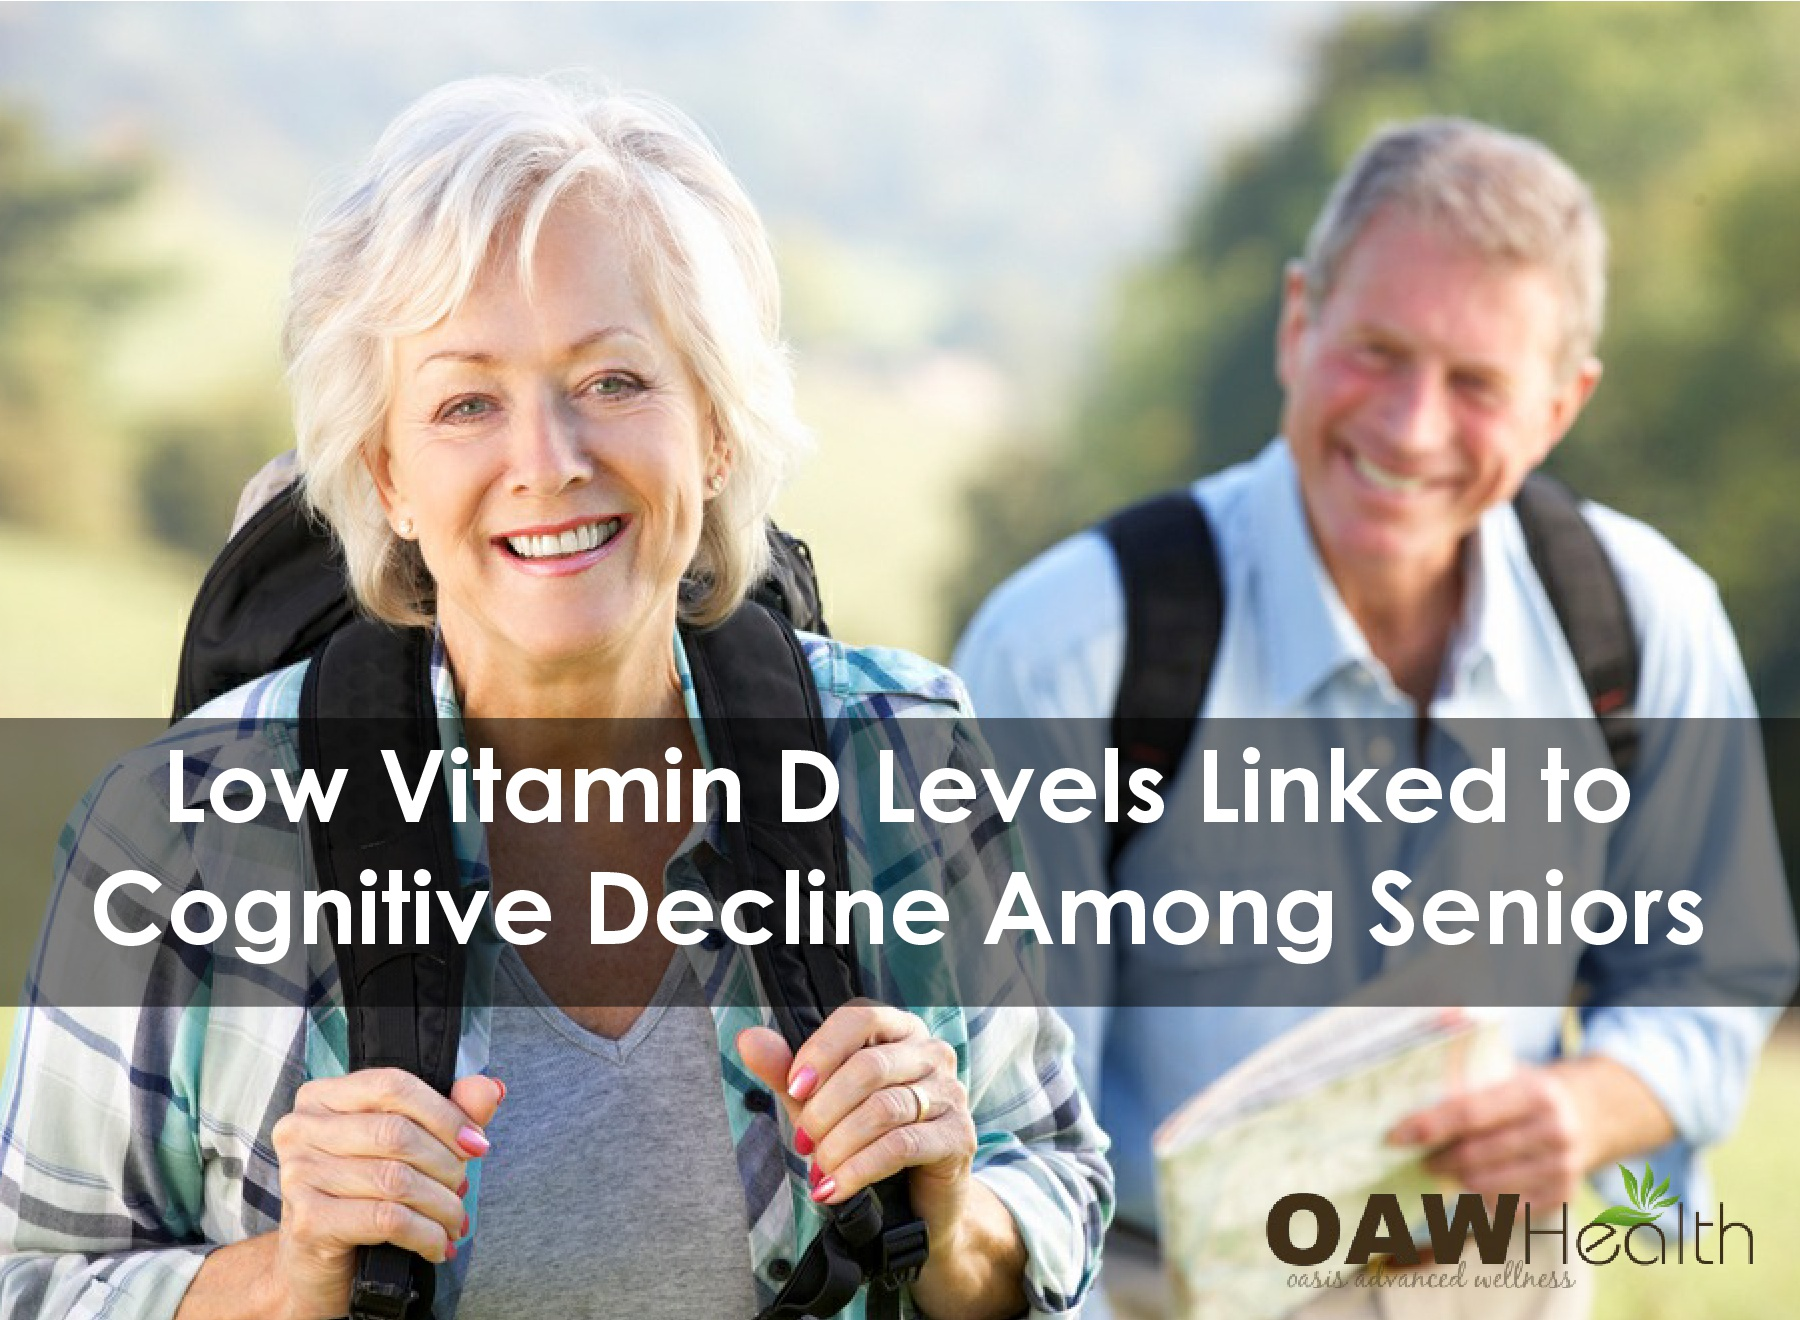 Low Vitamin D Levels Linked to Faster Cognitive Decline in Seniors